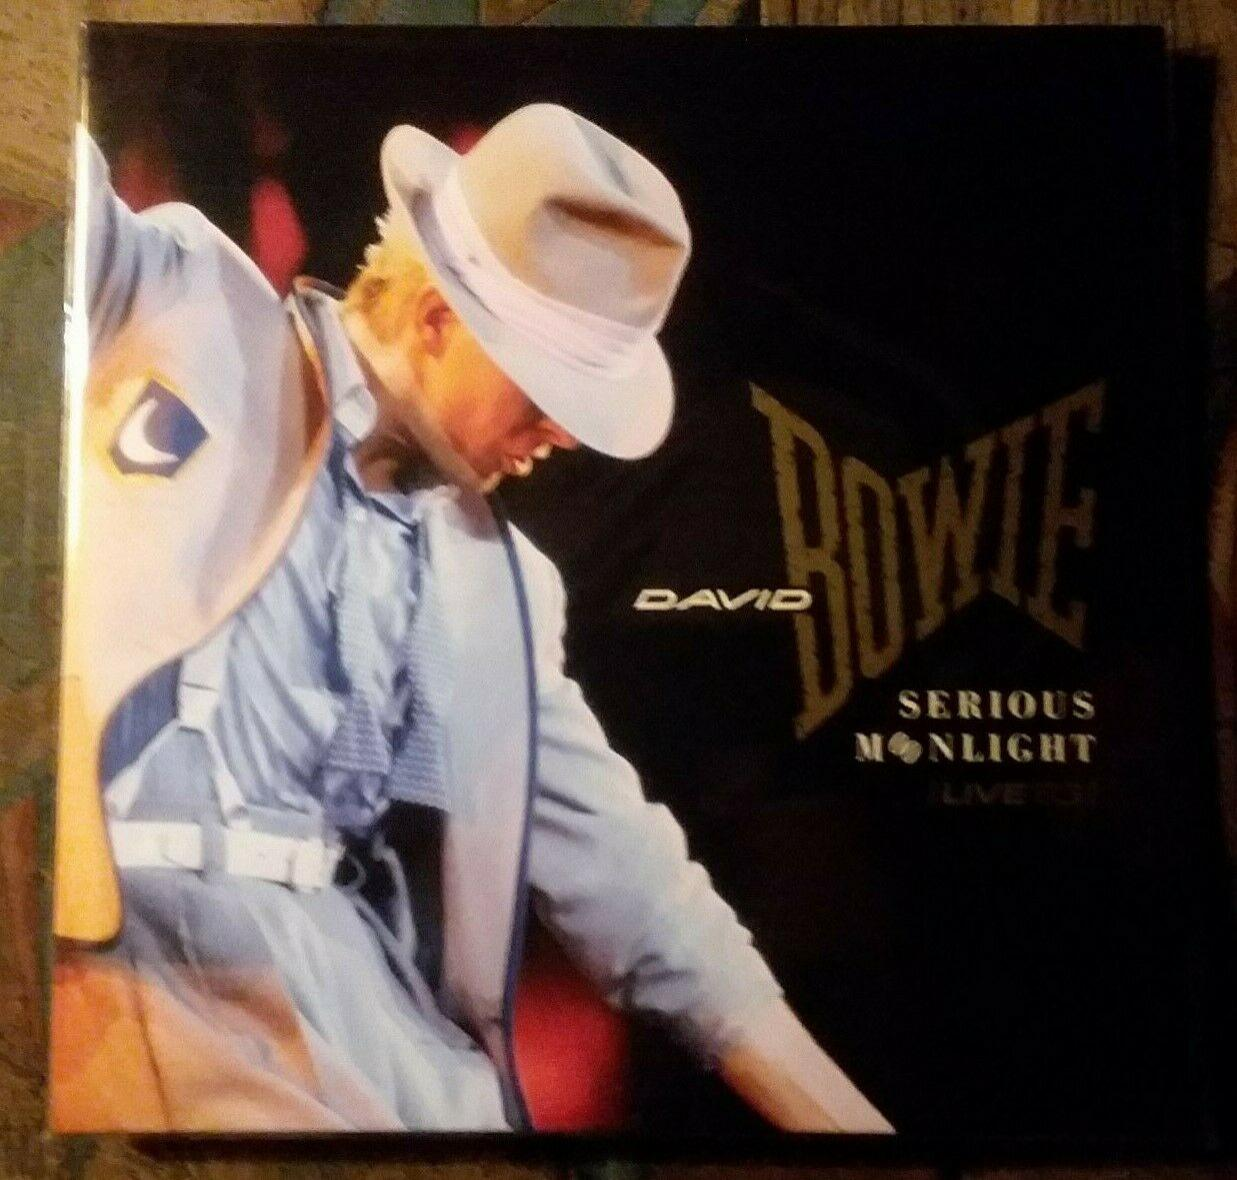 DAVID BOWIE SERIOUS MOONLIGHT LIVE 1983 NEW 180 GRAM 2 LP FROM LOVING THE ALIEN